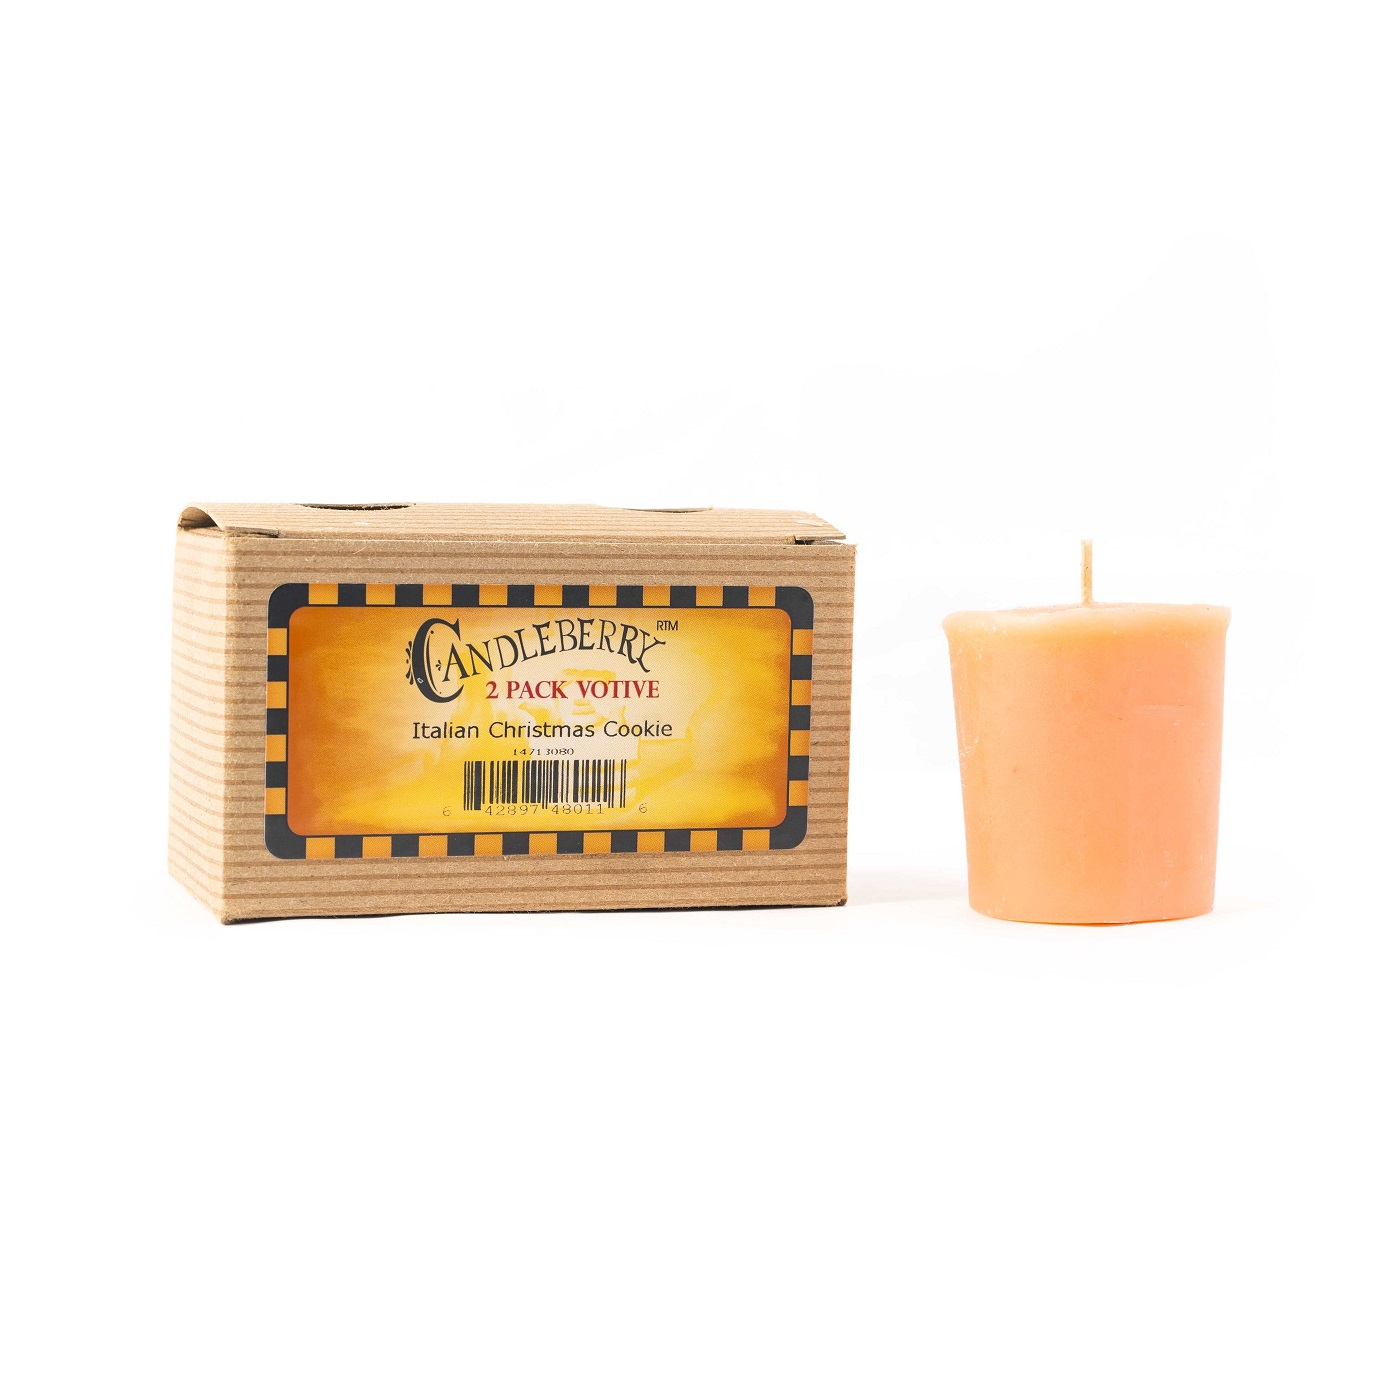 Italian Christmas Cookie 2-Pack Votive by Candleberry